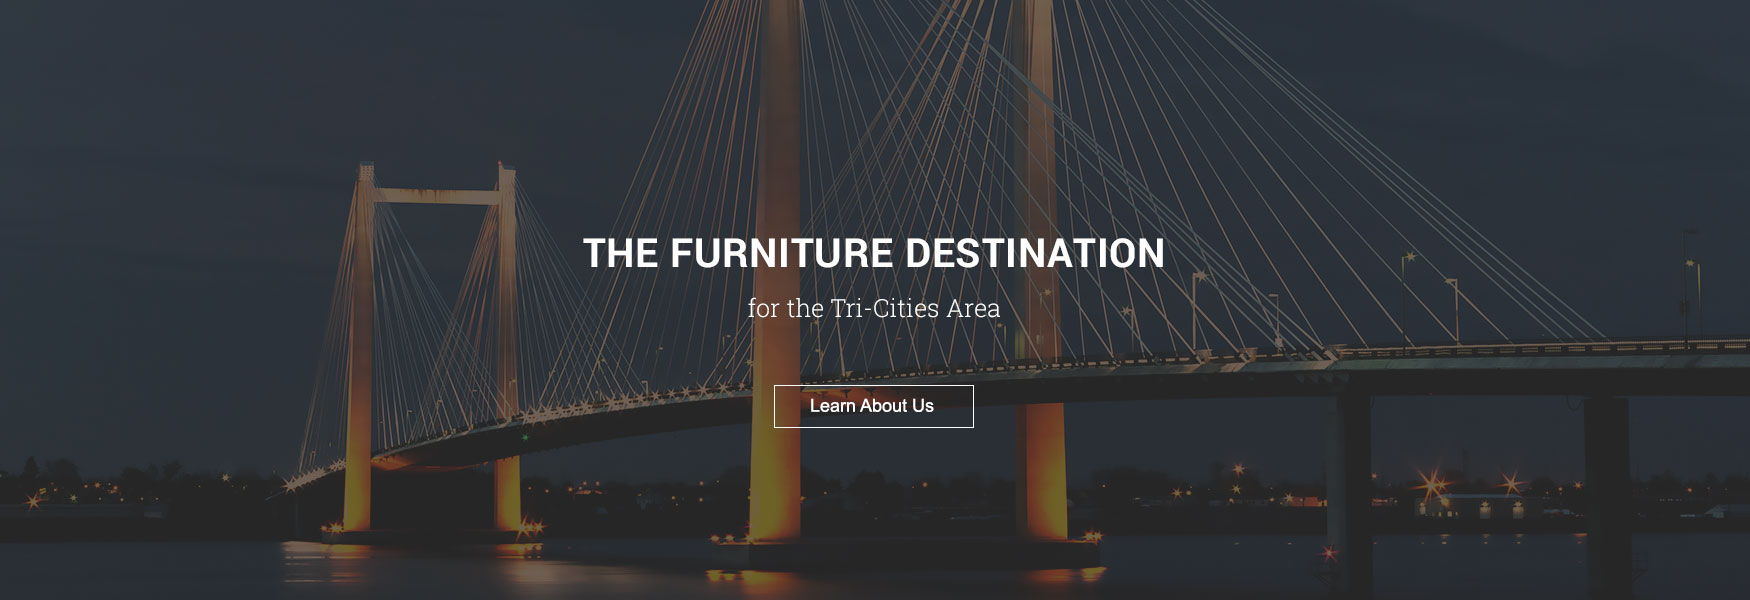 Furniture Destination Banner